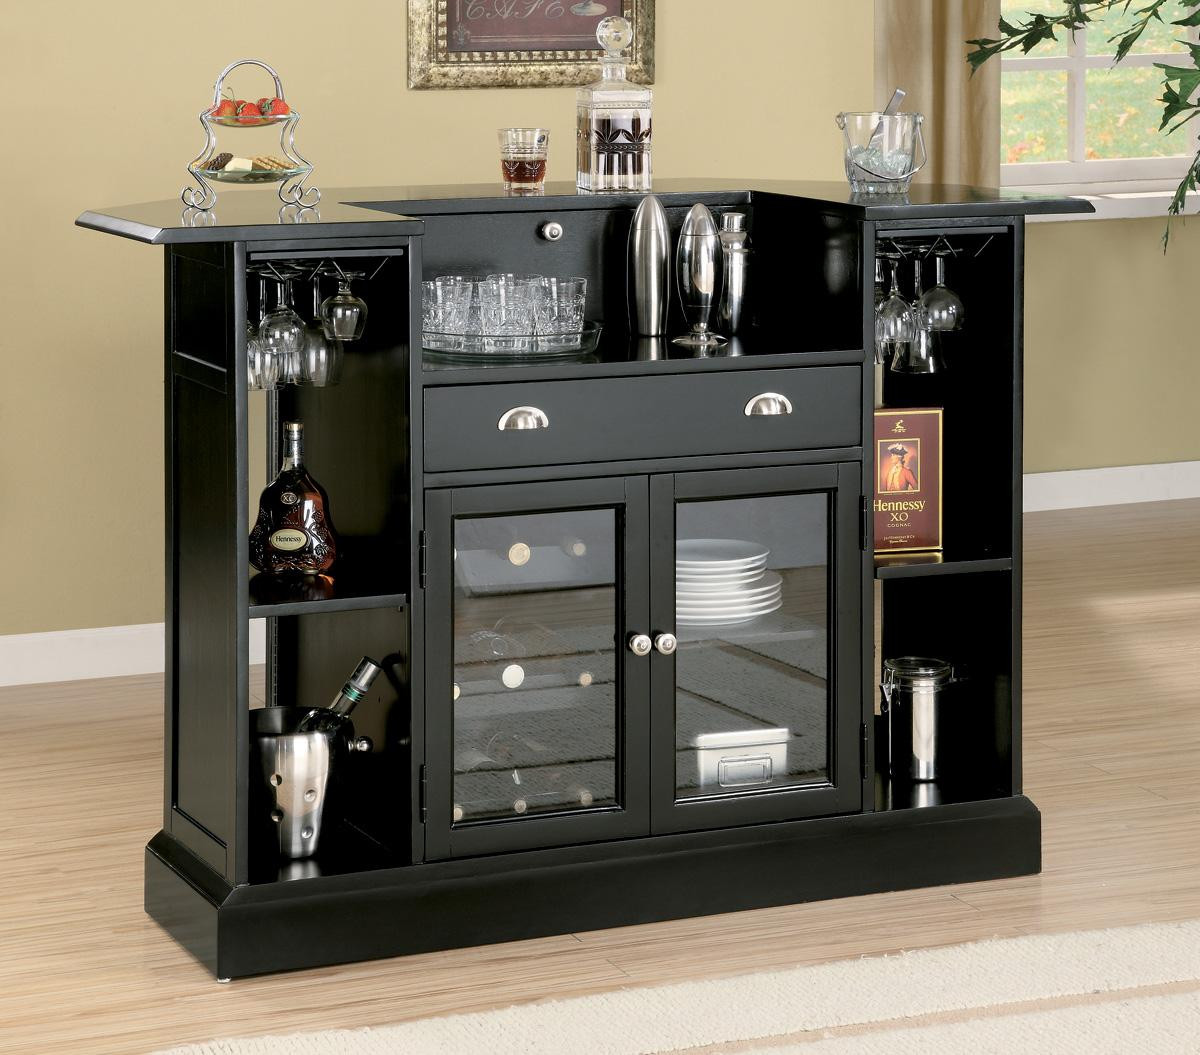 Wine rack bar table Wooden Bar Shown With Stemware Storage Black Bar Table With Wine Rack See More Picture Amazoncom Galenos Black Bar Table With Wine Rack